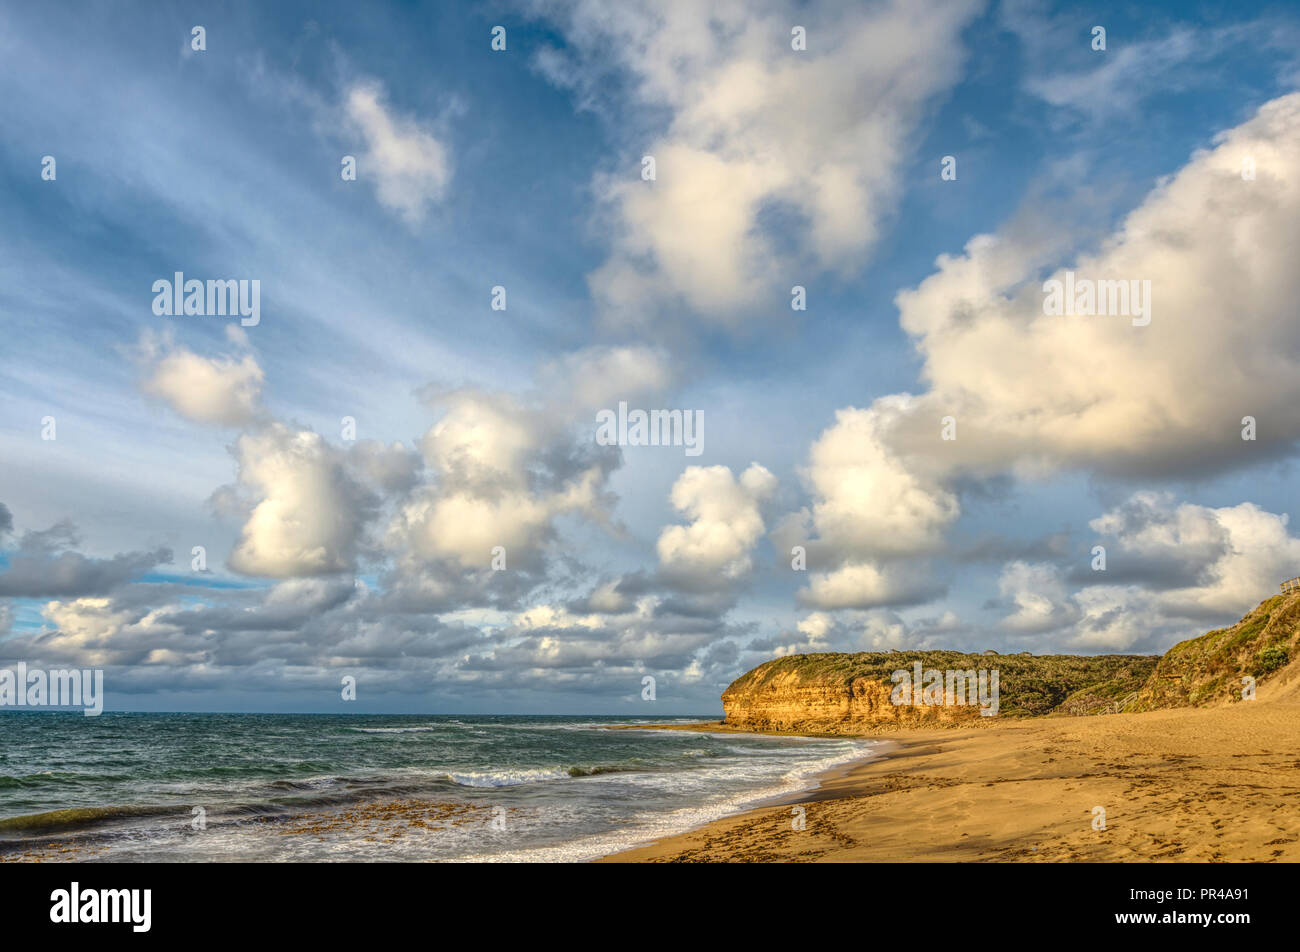 Bells Beach, Torquay, Surf Coast Shire, Great Ocean Road, Victoria, Australia, site of the annual Rip Curl Pro surfing contest, held each Easter. - Stock Image